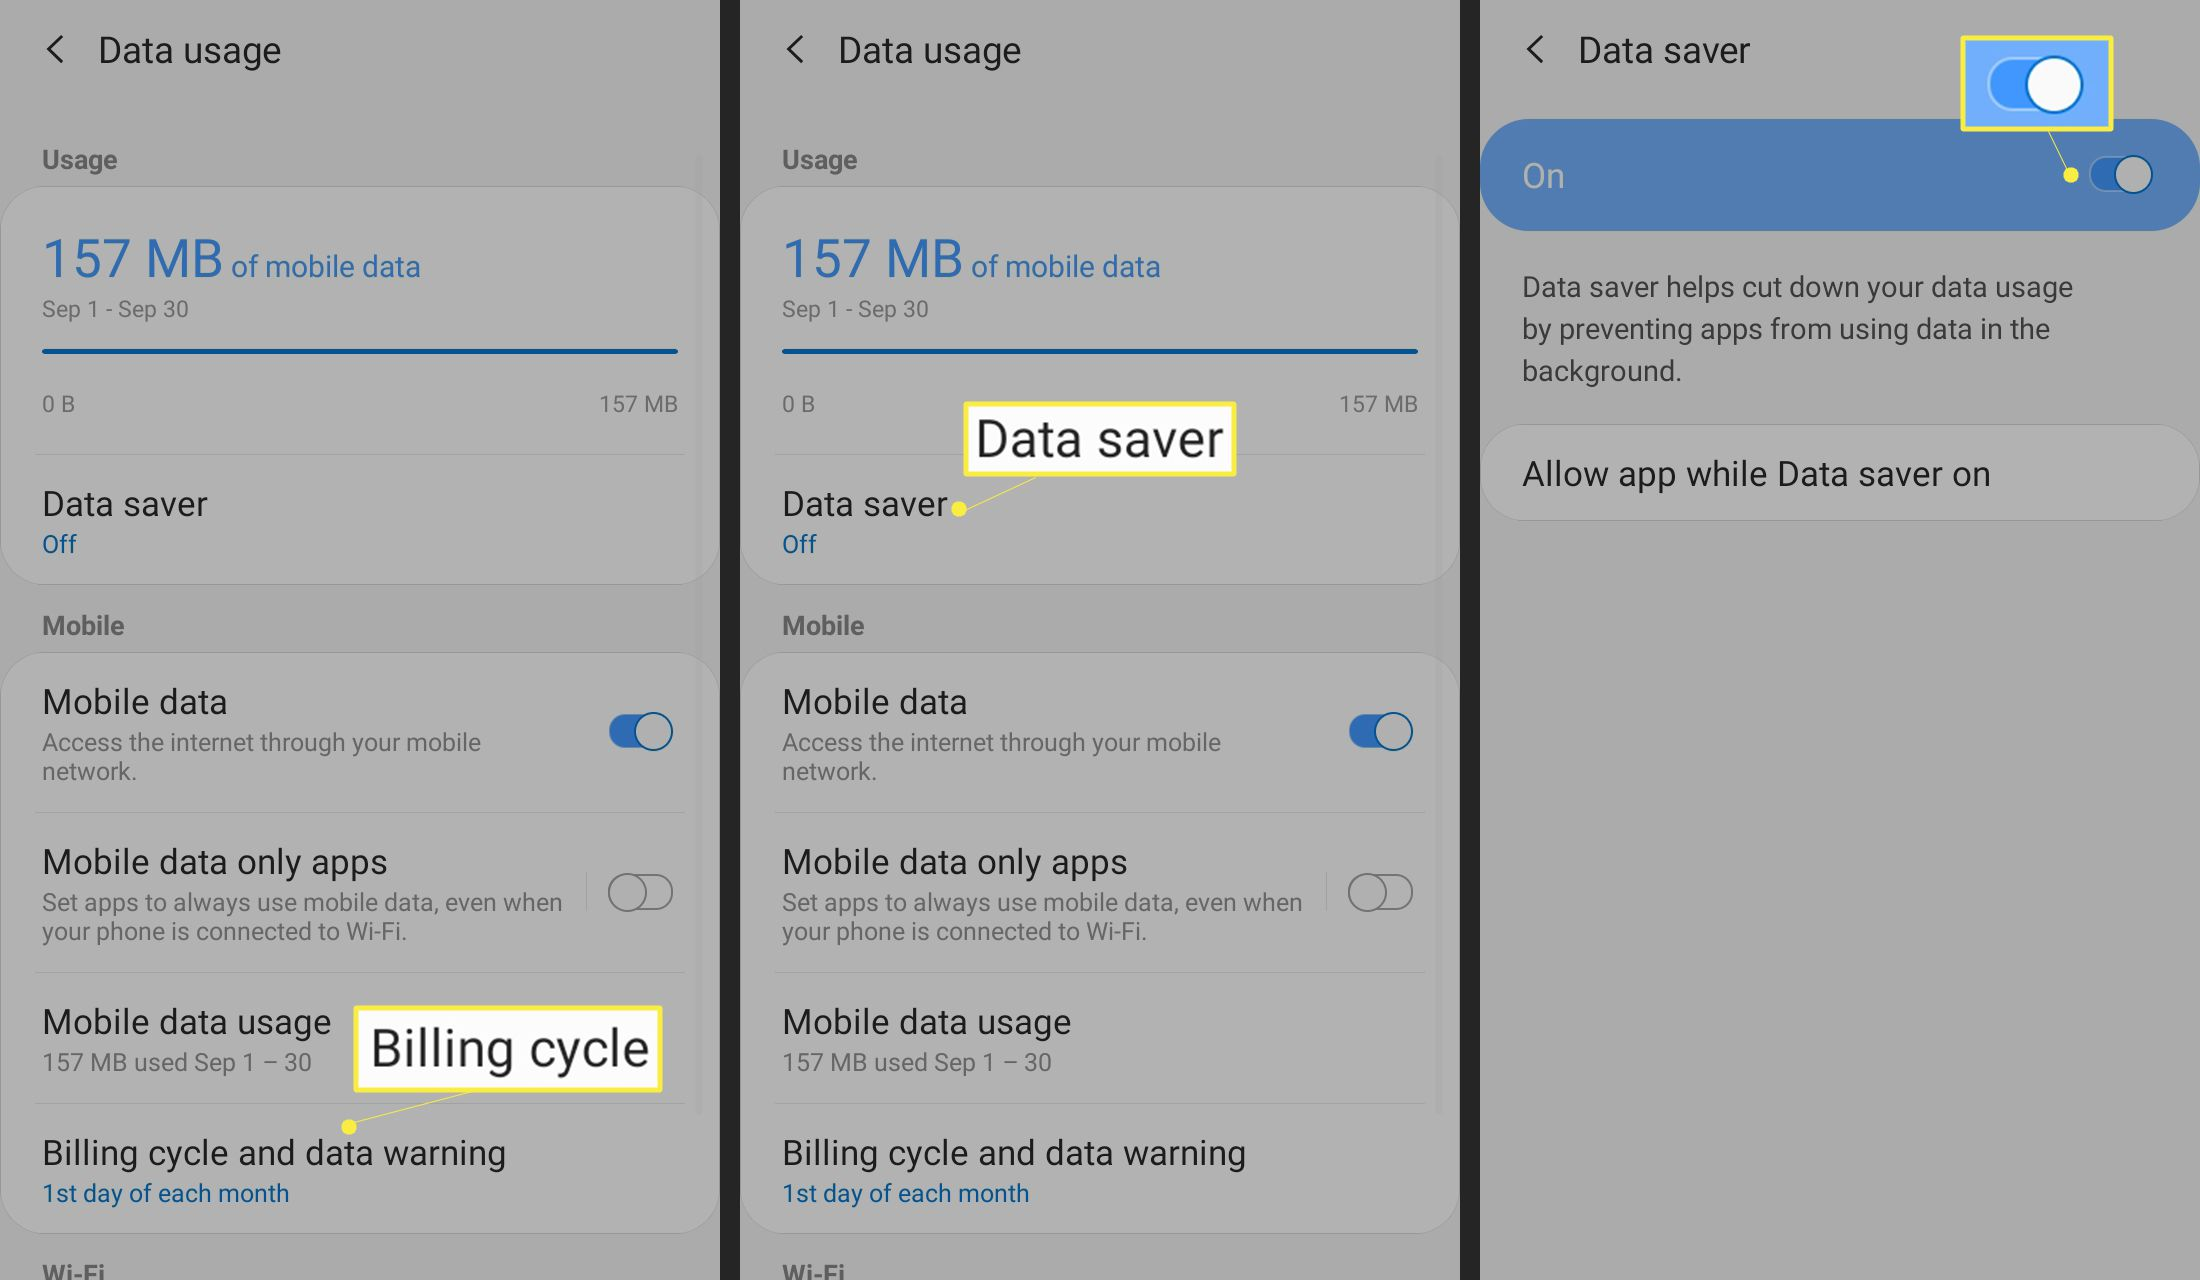 Tap Billing cycle or Data Saver and the toggle switch.